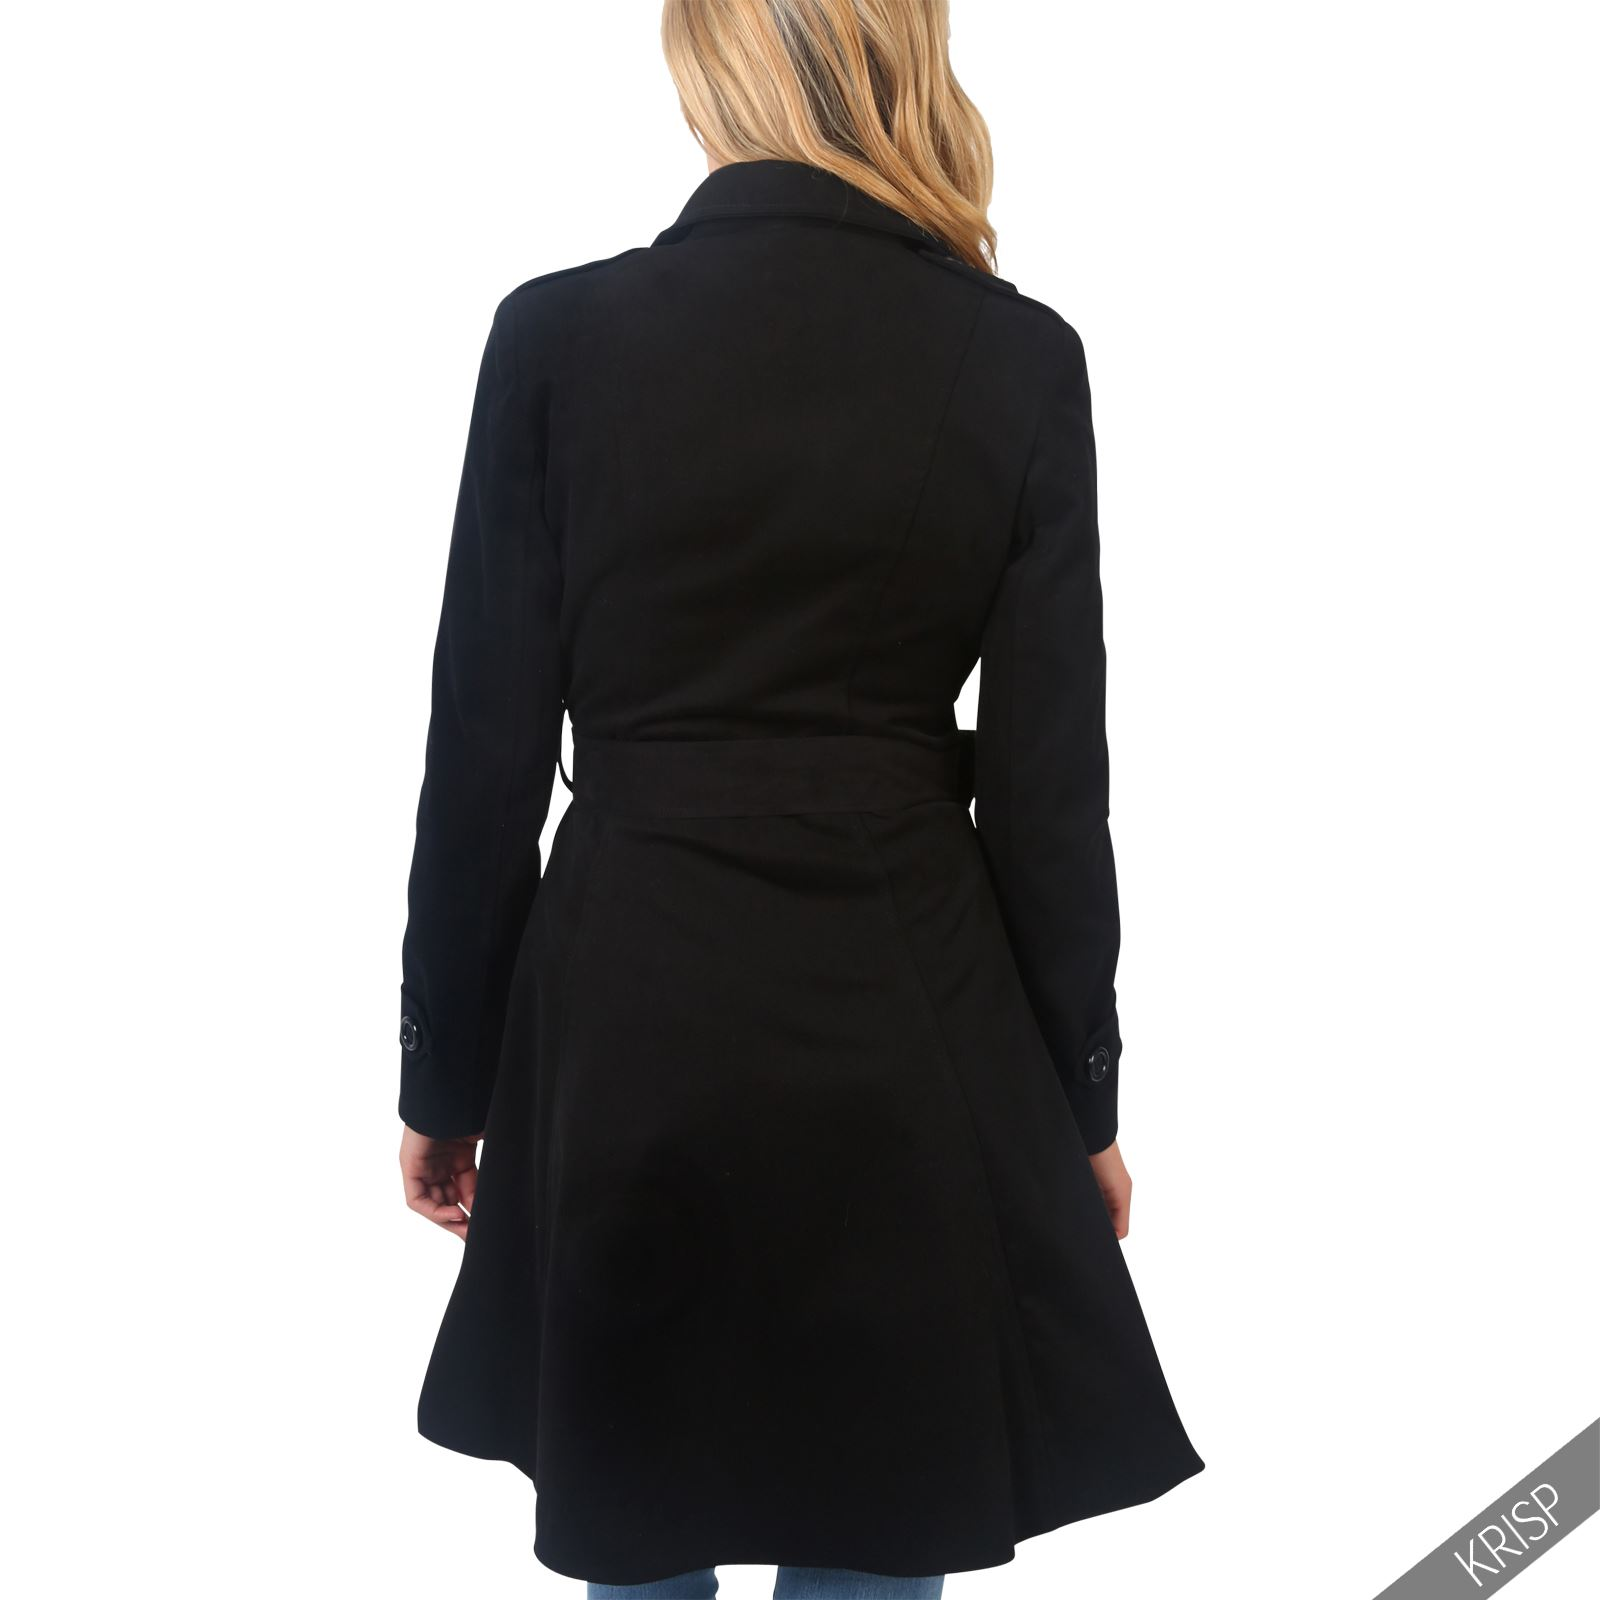 damen trenchcoat mantel parka elegante lange jacke klassischer schnitt baumwolle ebay. Black Bedroom Furniture Sets. Home Design Ideas